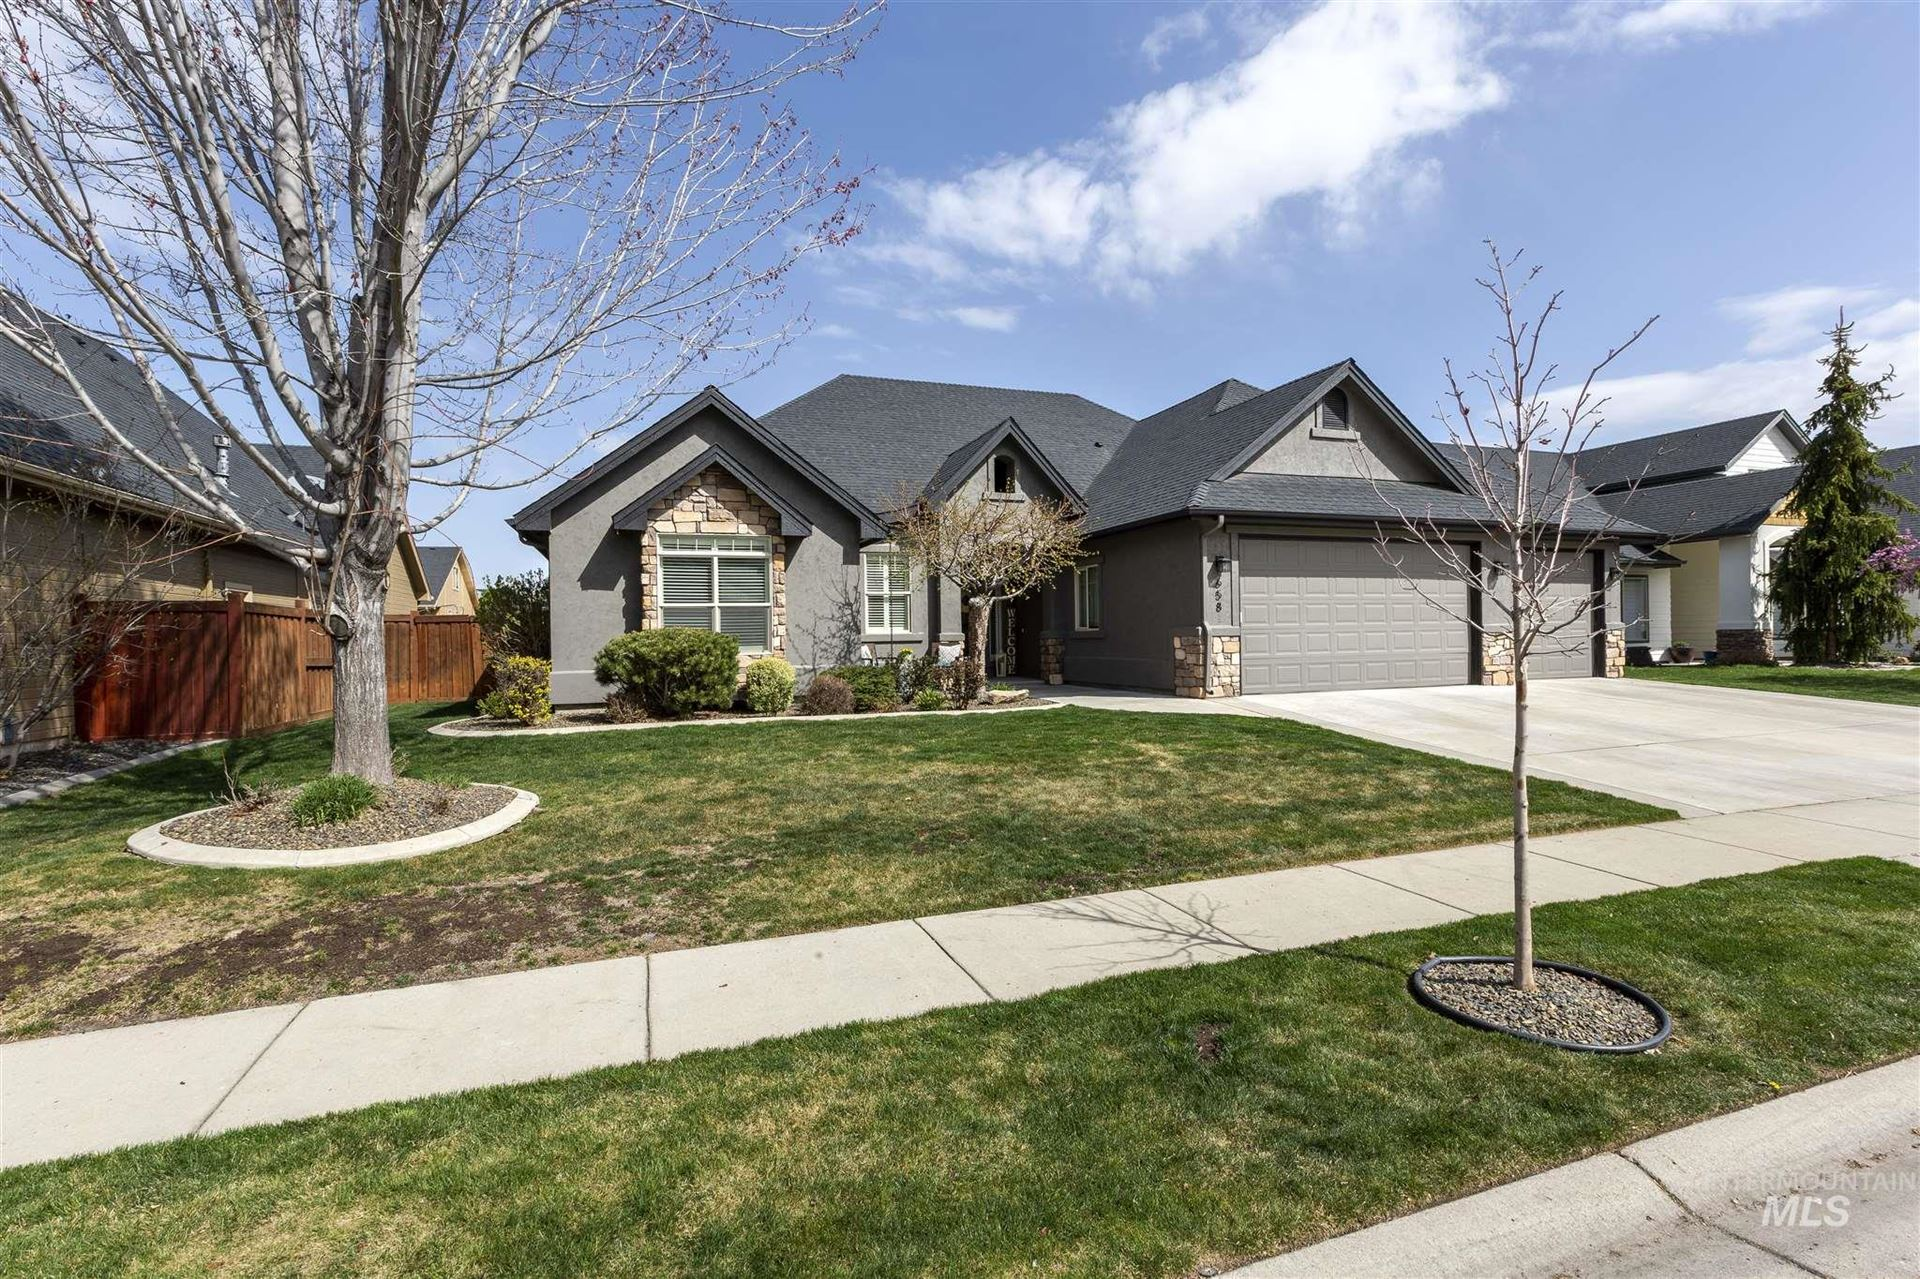 Photo of 658 E Painted Hills Dr, Meridian, ID 83646 (MLS # 98798914)